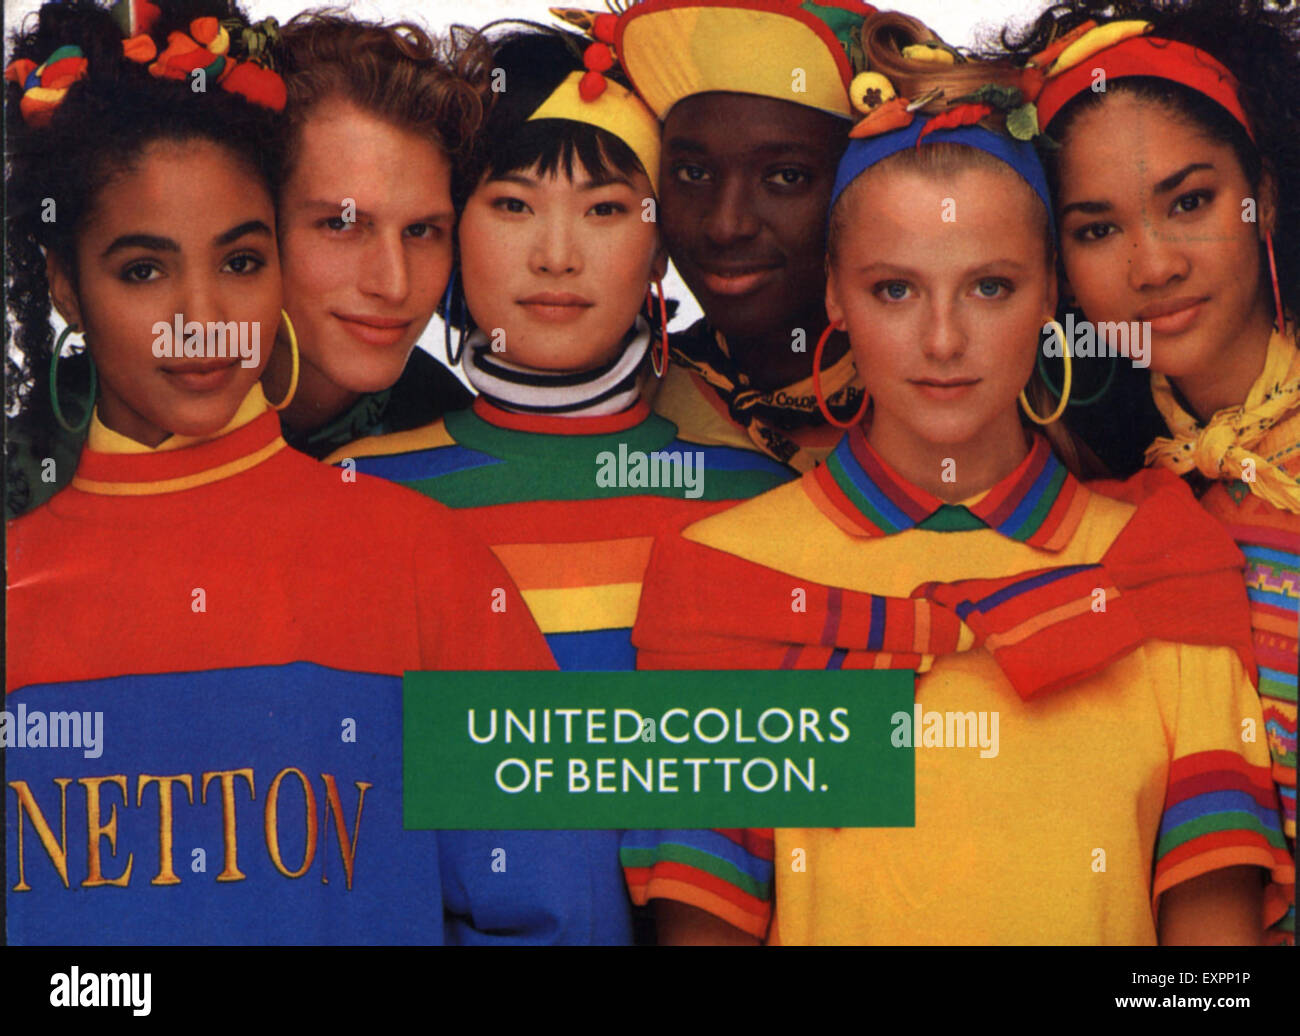 578d26a540 1980s UK United Colors of Benetton Magazine Advert Stock Photo ...